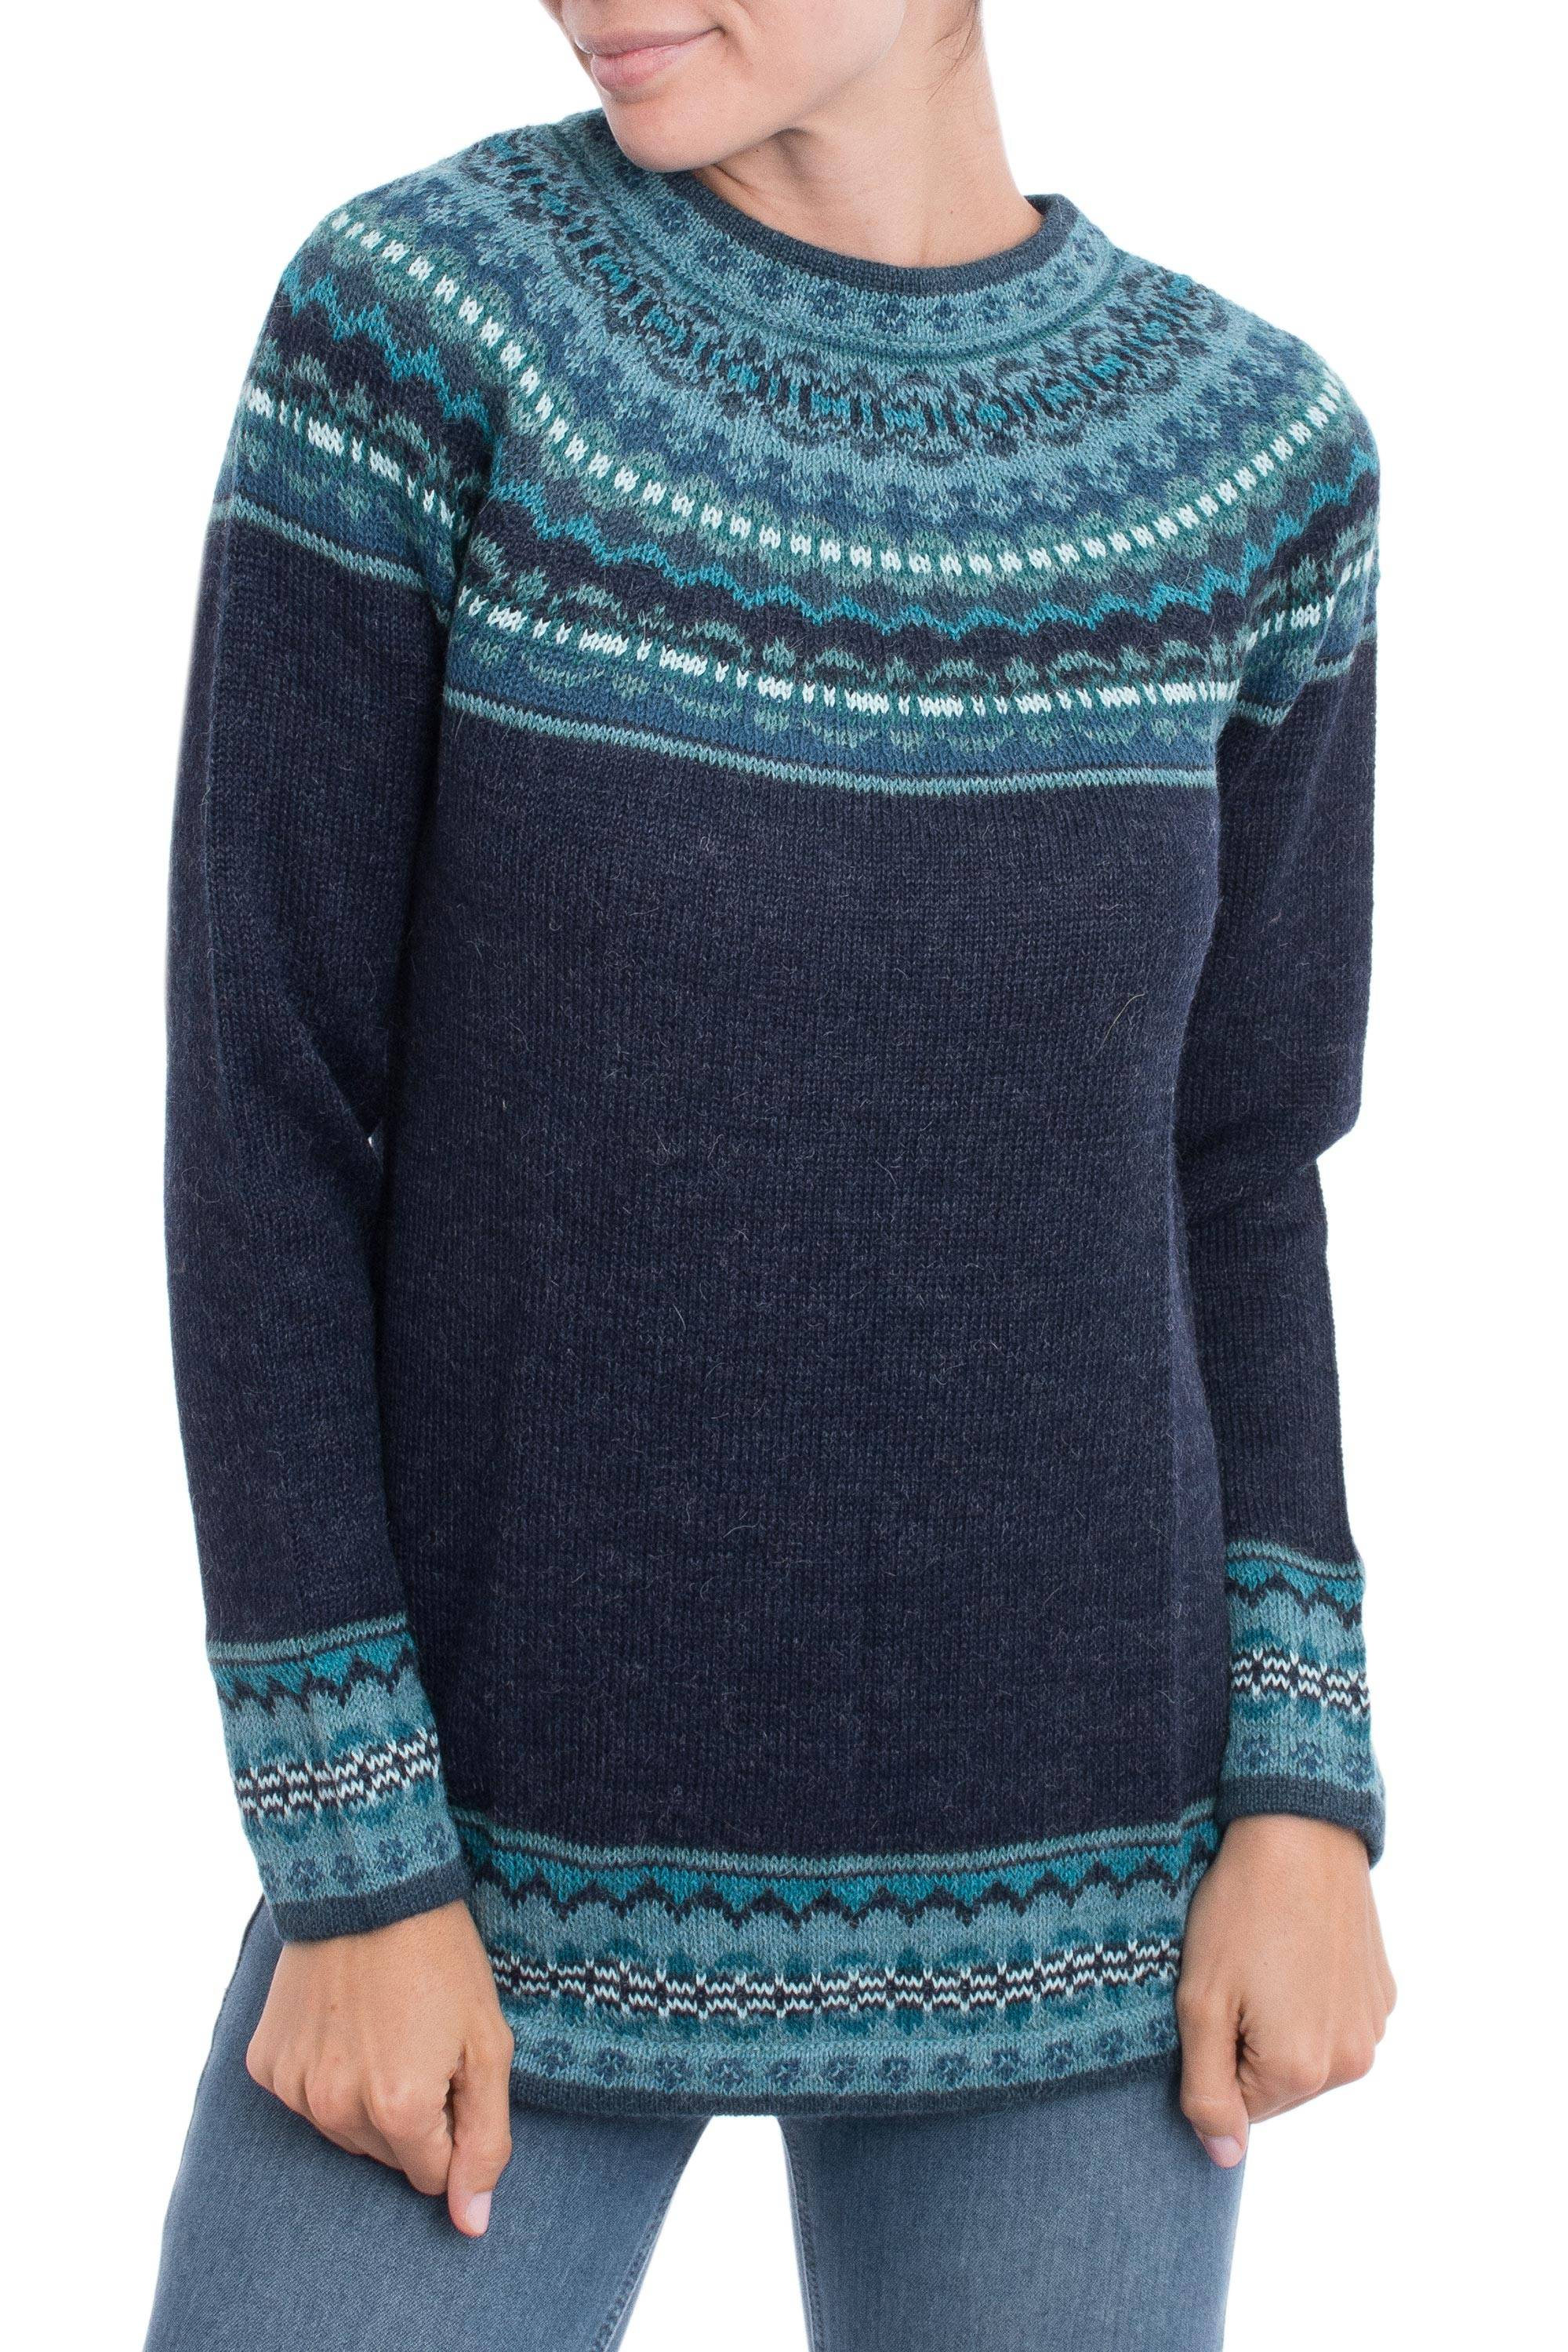 a179966bef01 Navy Blue 100% Alpaca Pullover Patterned Peruvian Sweater,